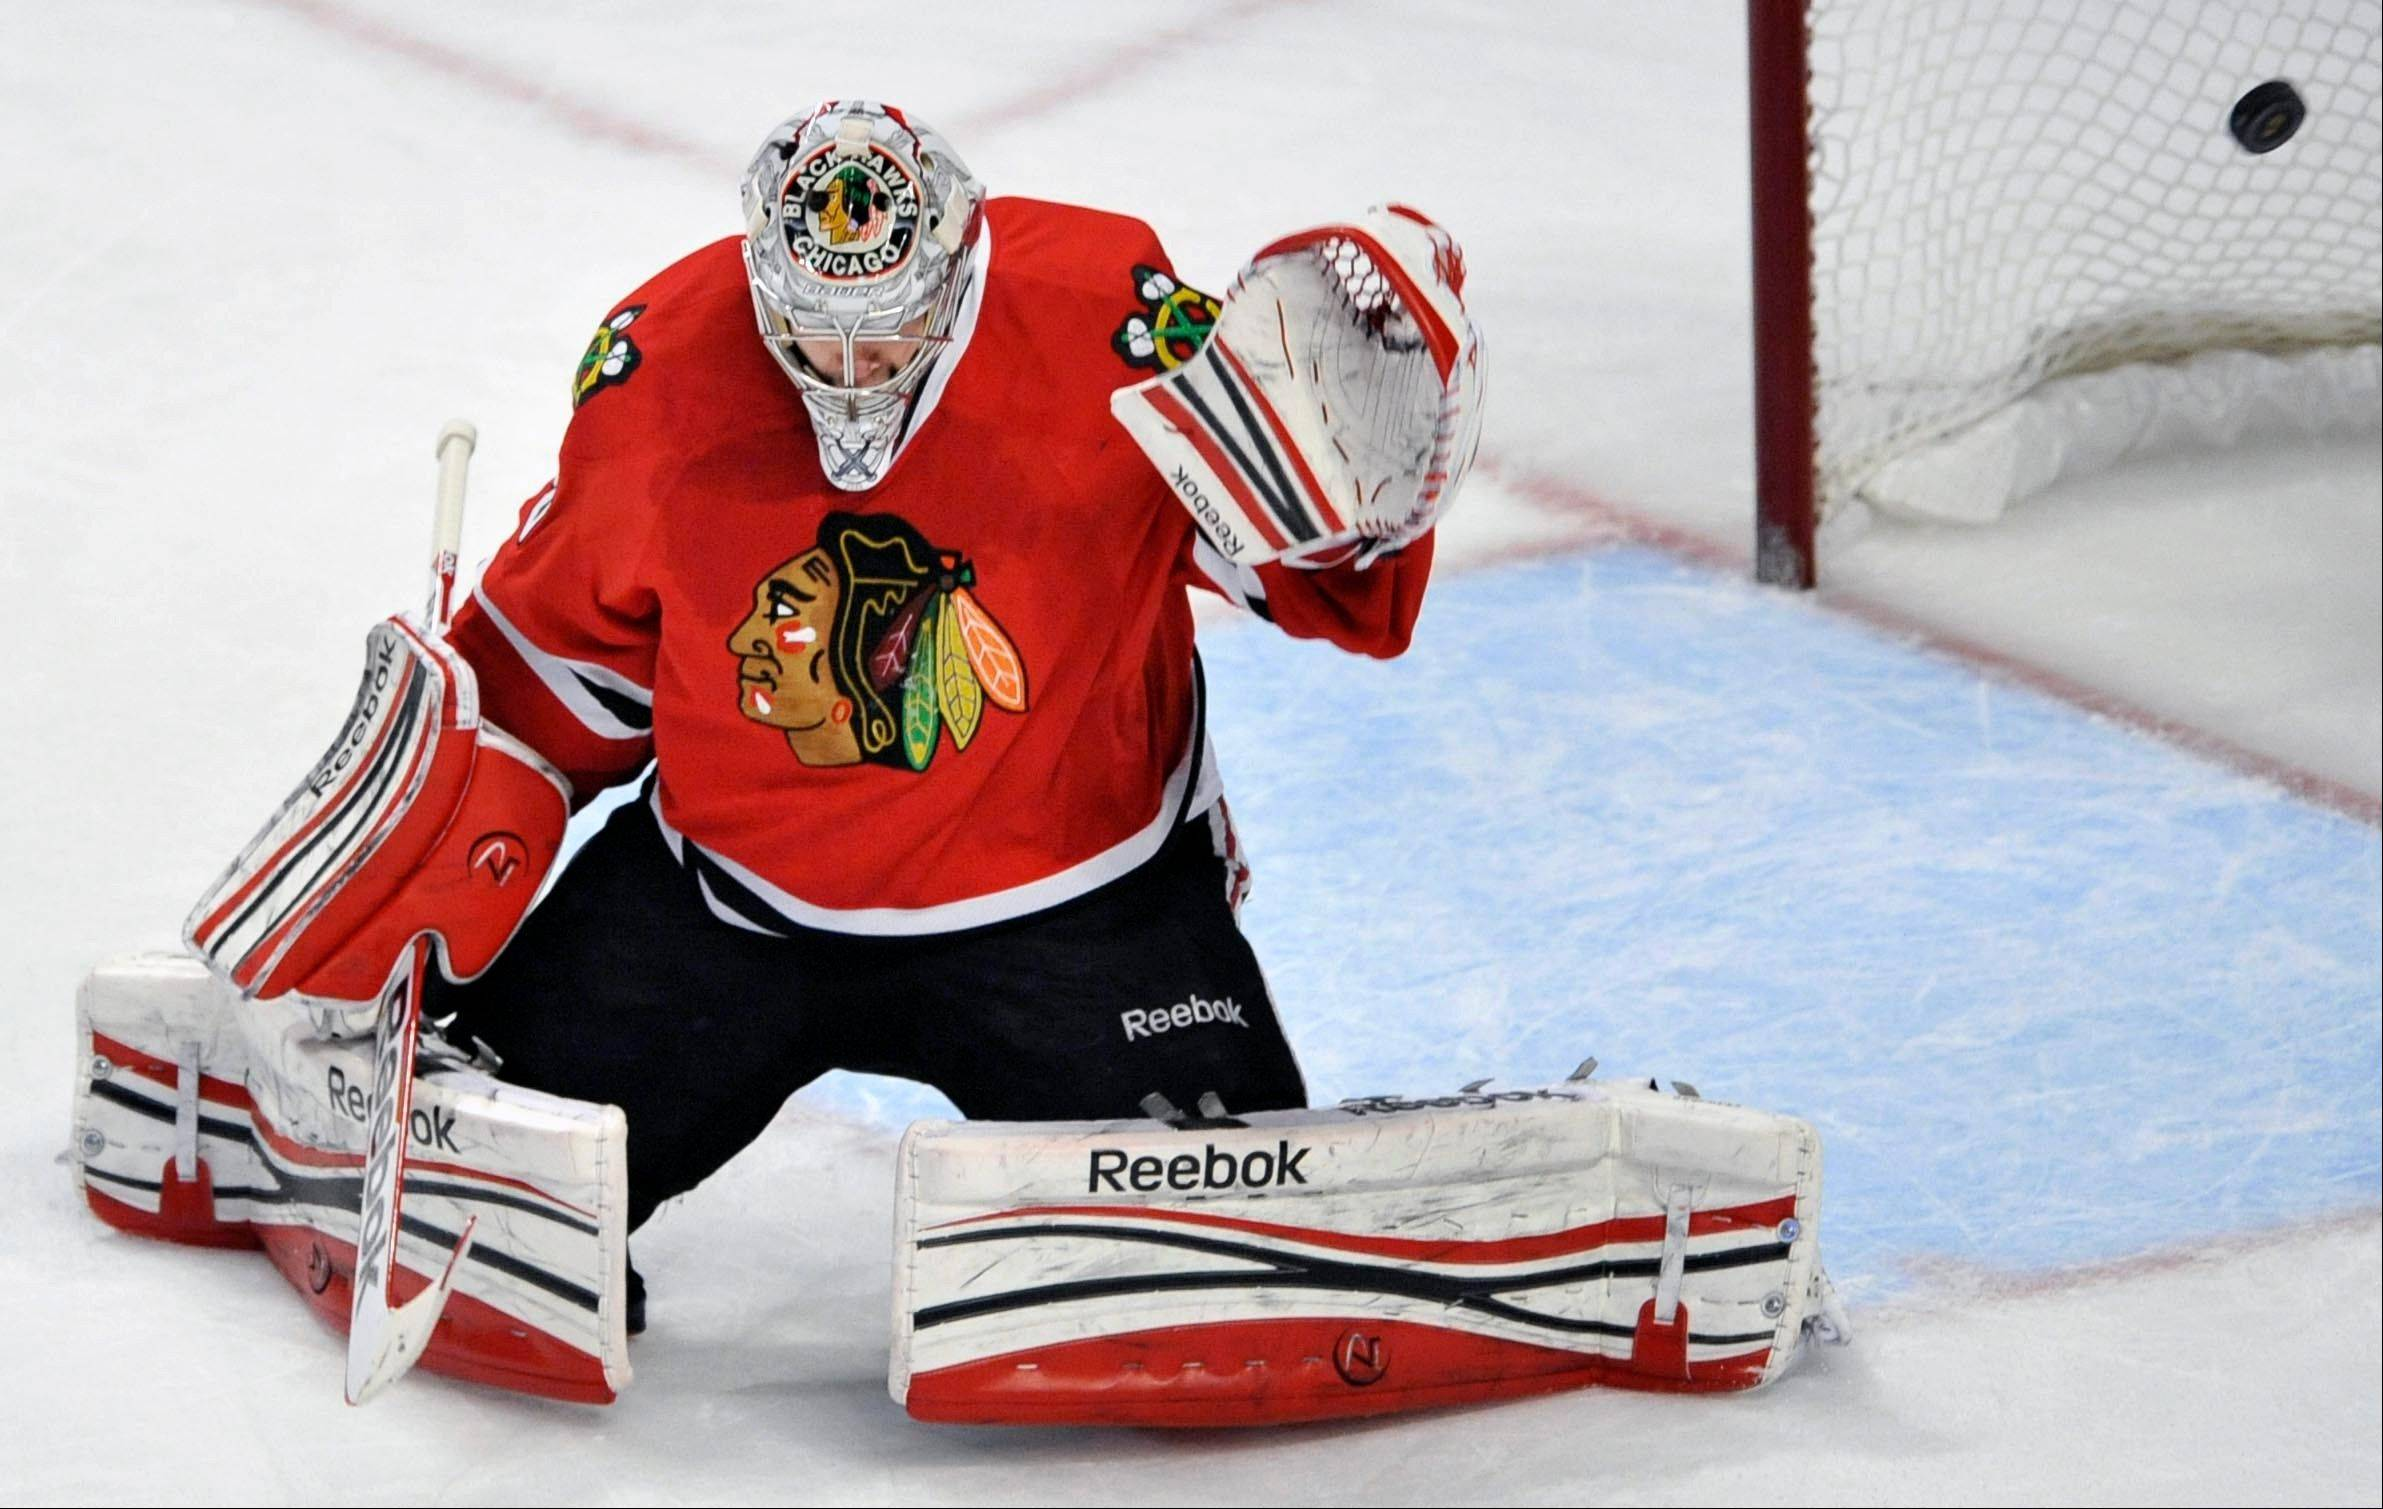 Chicago Blackhawks goalie Corey Crawford misses a goal scored by St. Louis Blues' Adam Cracknell during the first period of an NHL hockey game in Chicago, Thursday, April 4, 2013.